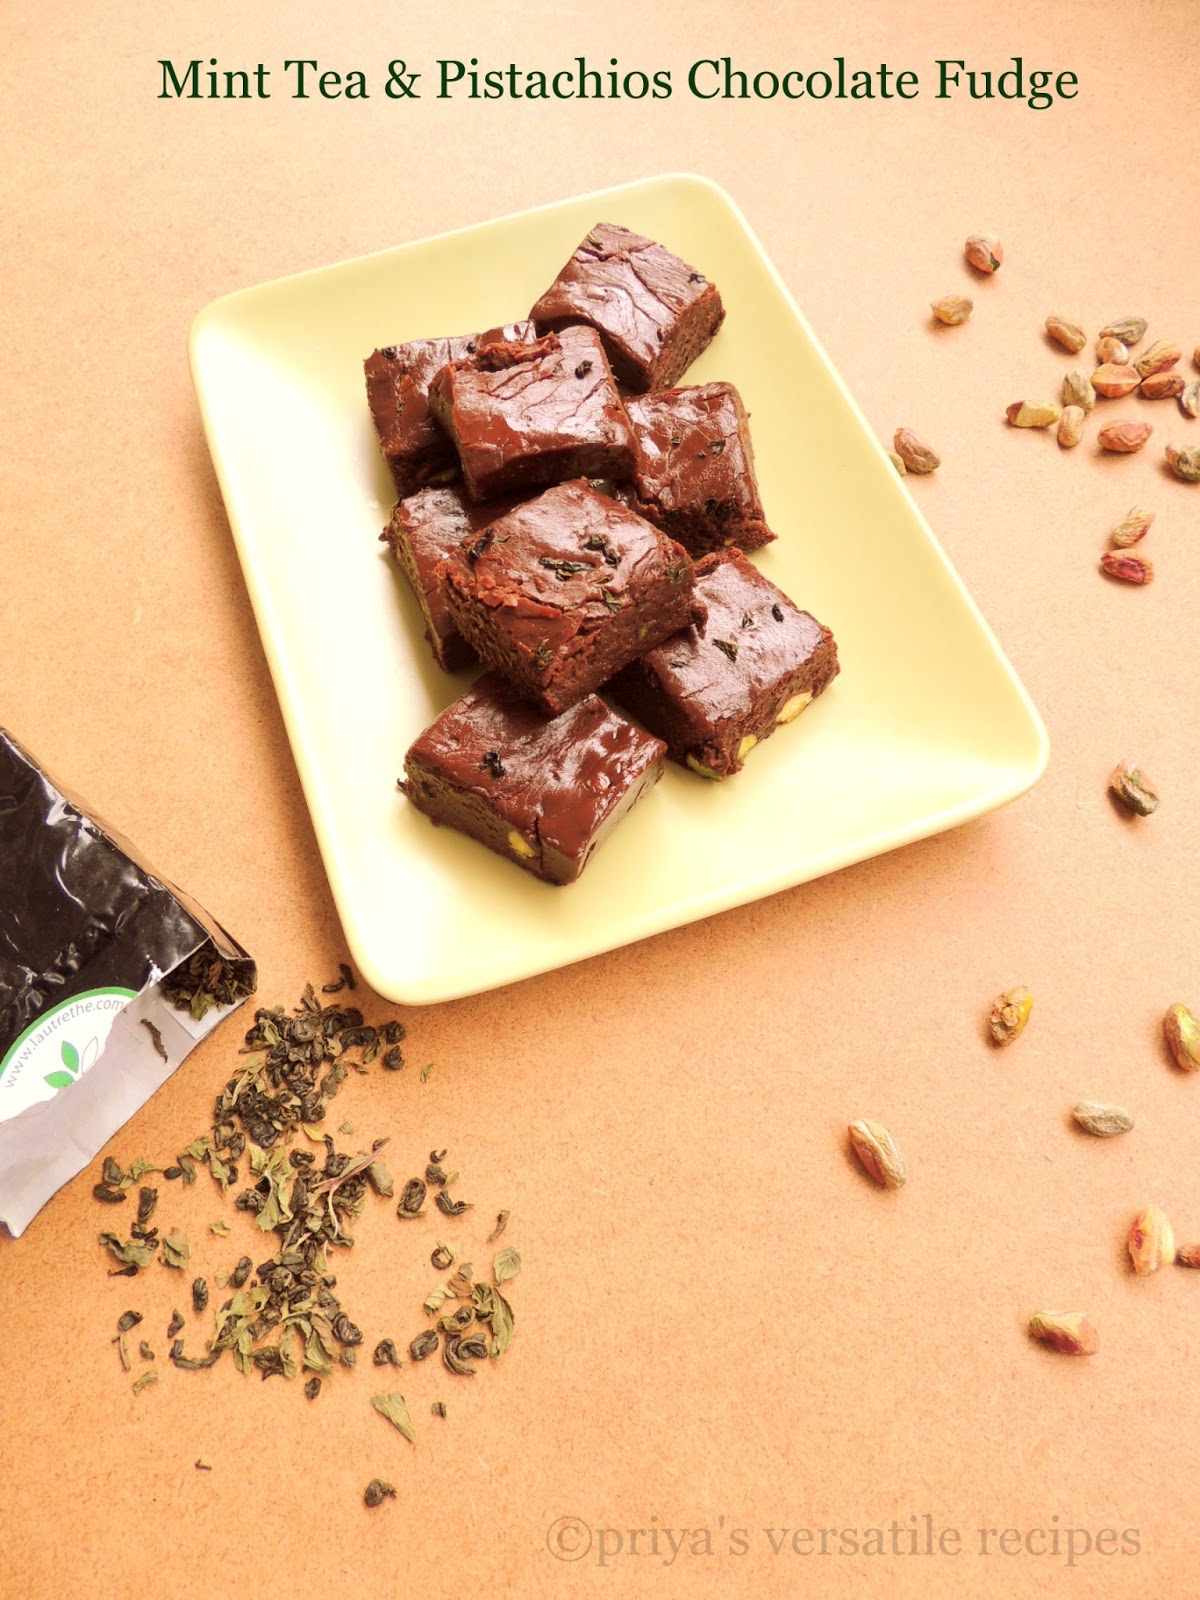 Priya's Versatile Recipes: Mint Tea & Pistachios Chocolate Fudge